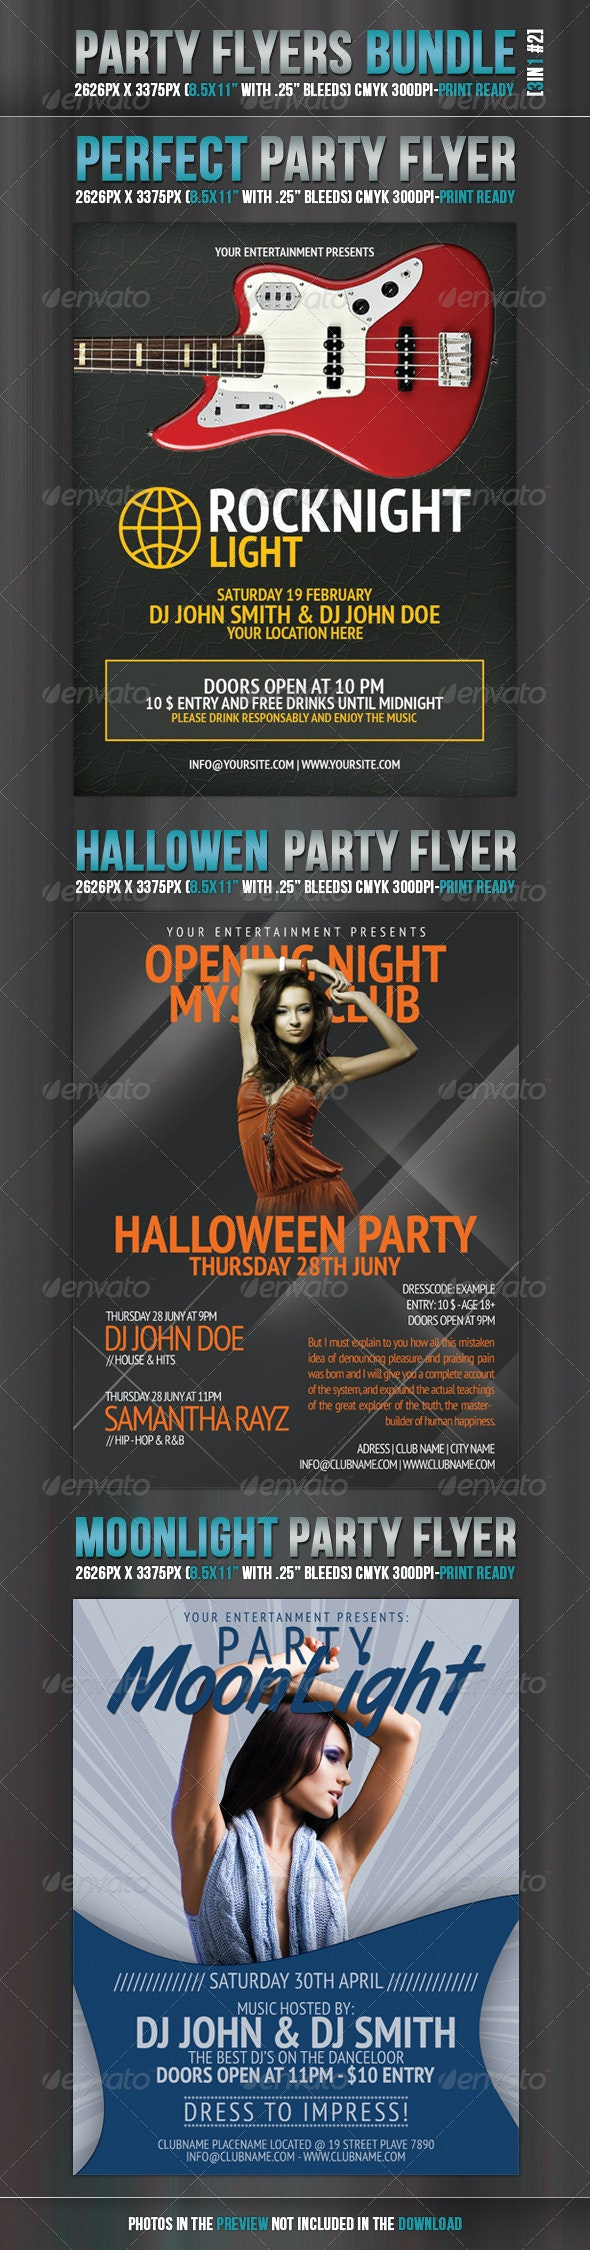 Party Flyers Bundle 3in1 #2 - Clubs & Parties Events